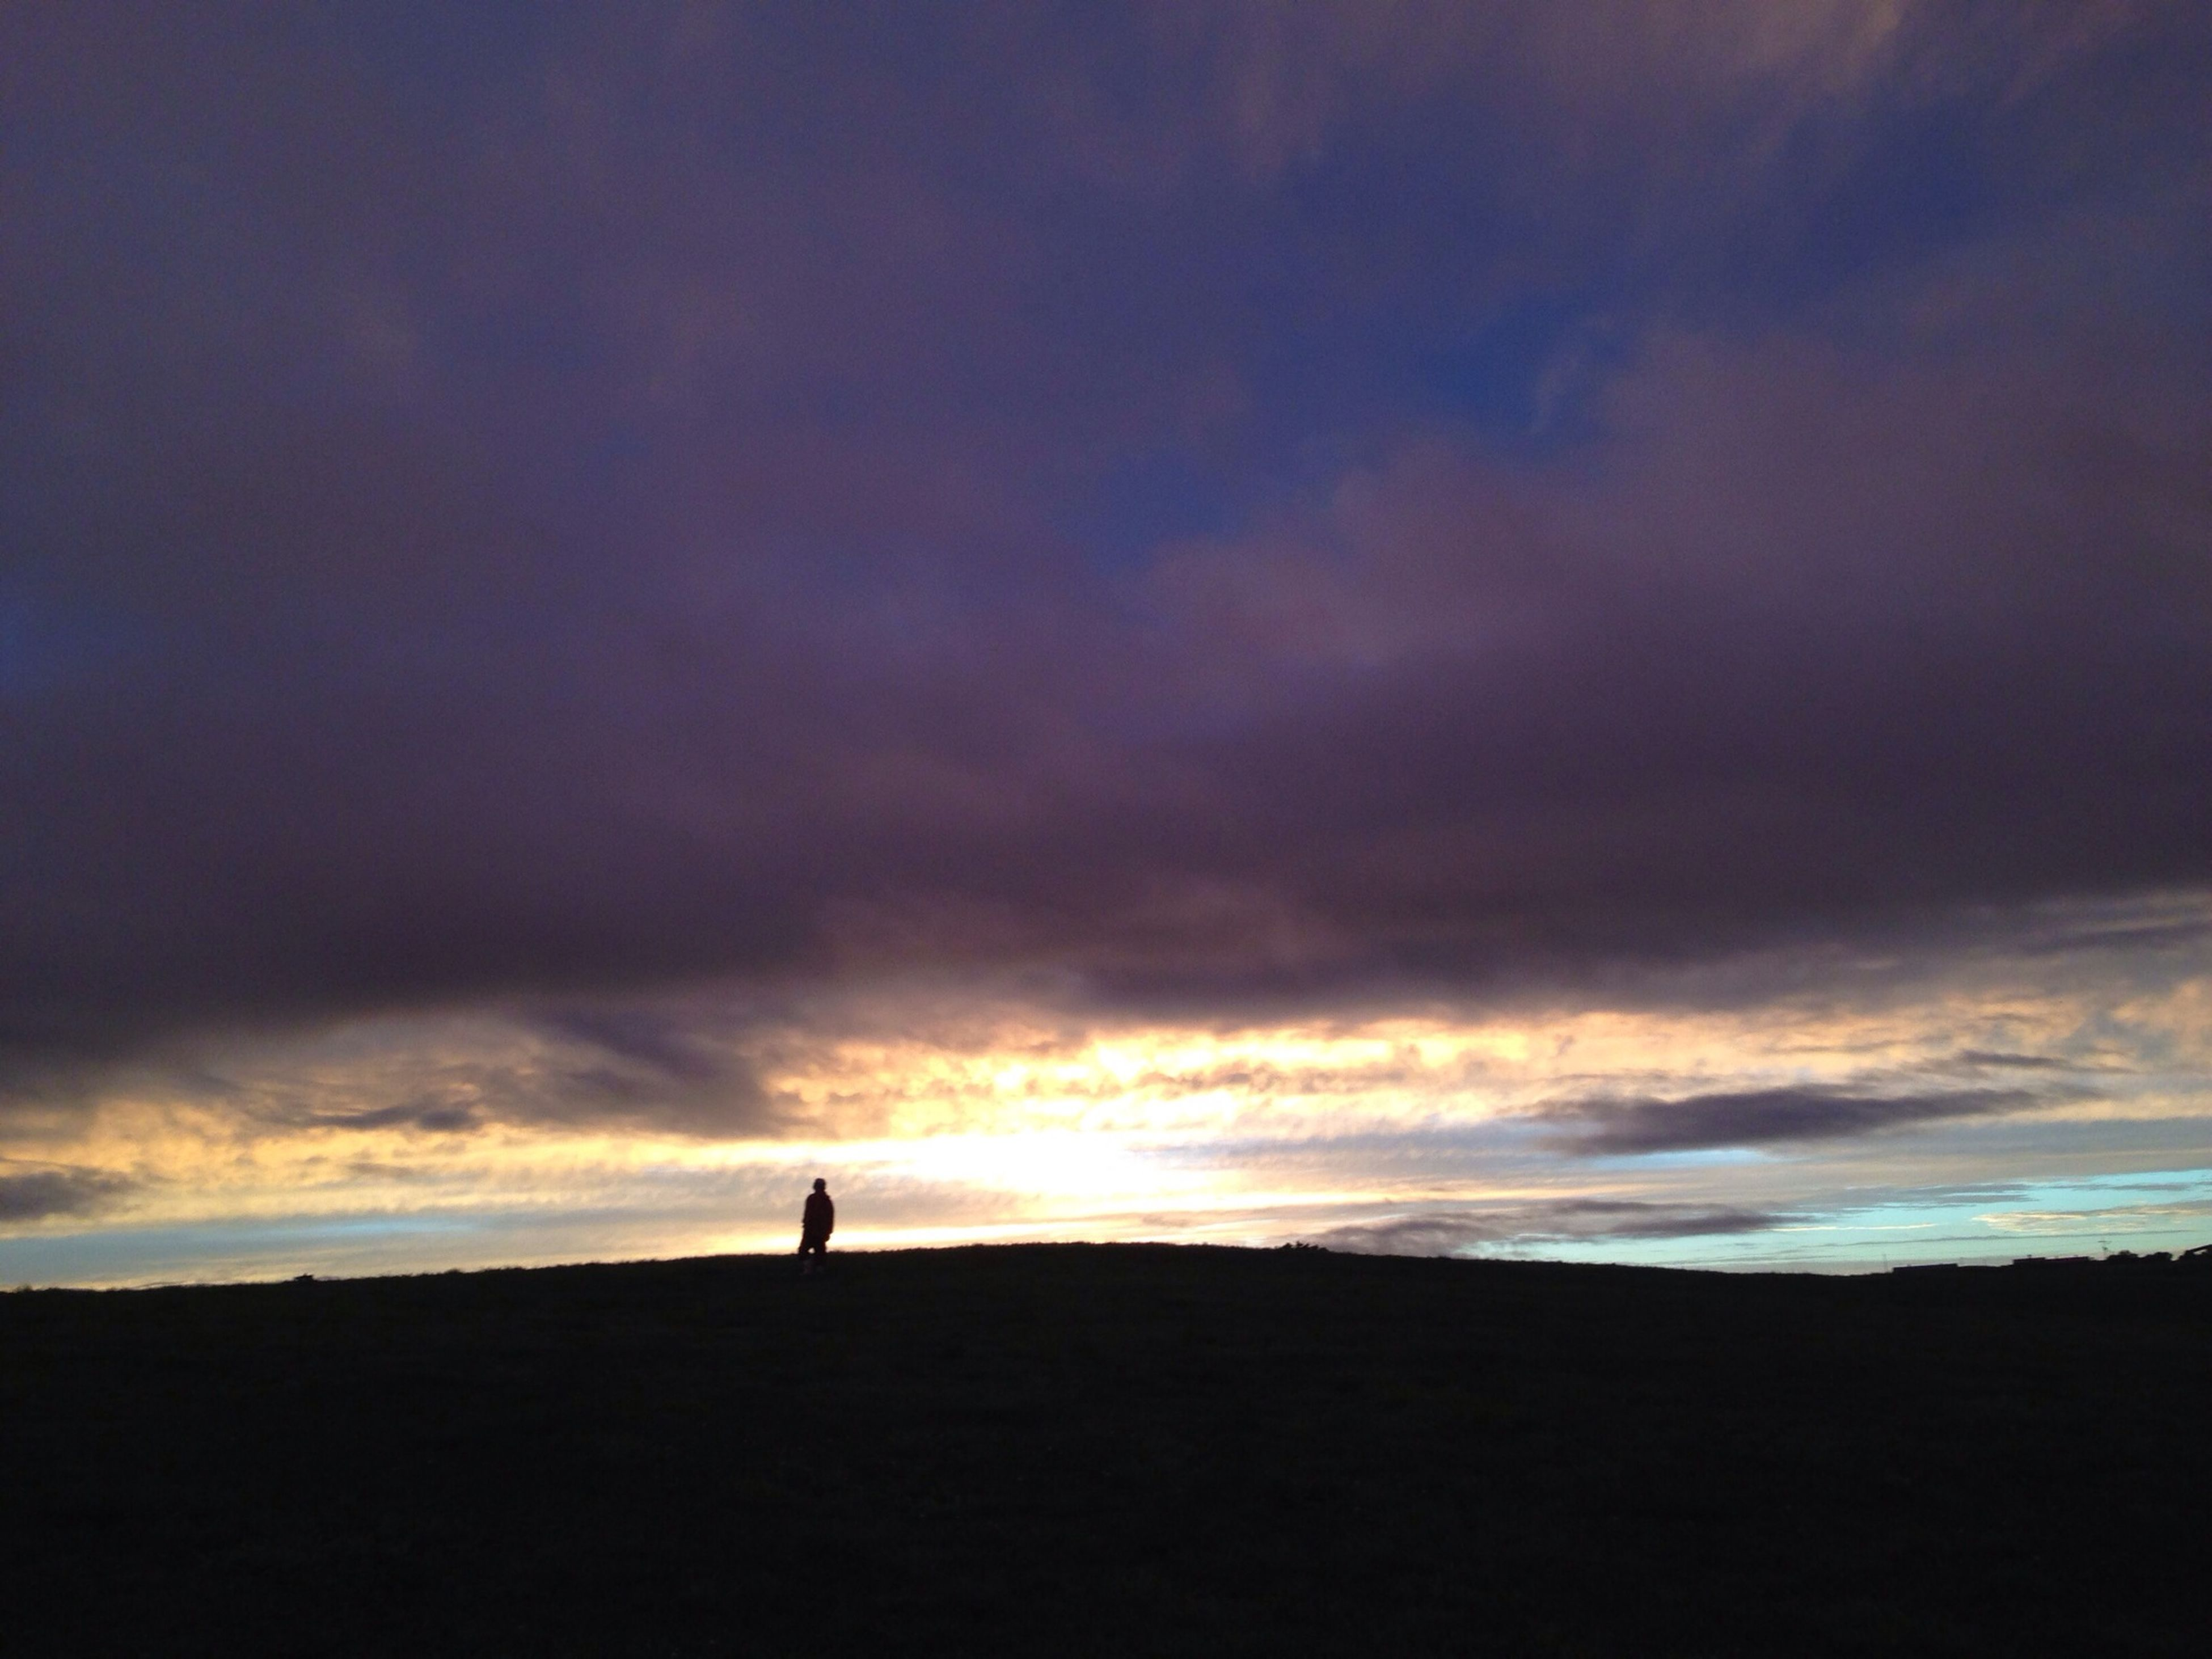 silhouette, sky, sunset, cloud - sky, tranquil scene, scenics, tranquility, beauty in nature, cloudy, cloud, landscape, nature, dramatic sky, dusk, idyllic, outline, orange color, standing